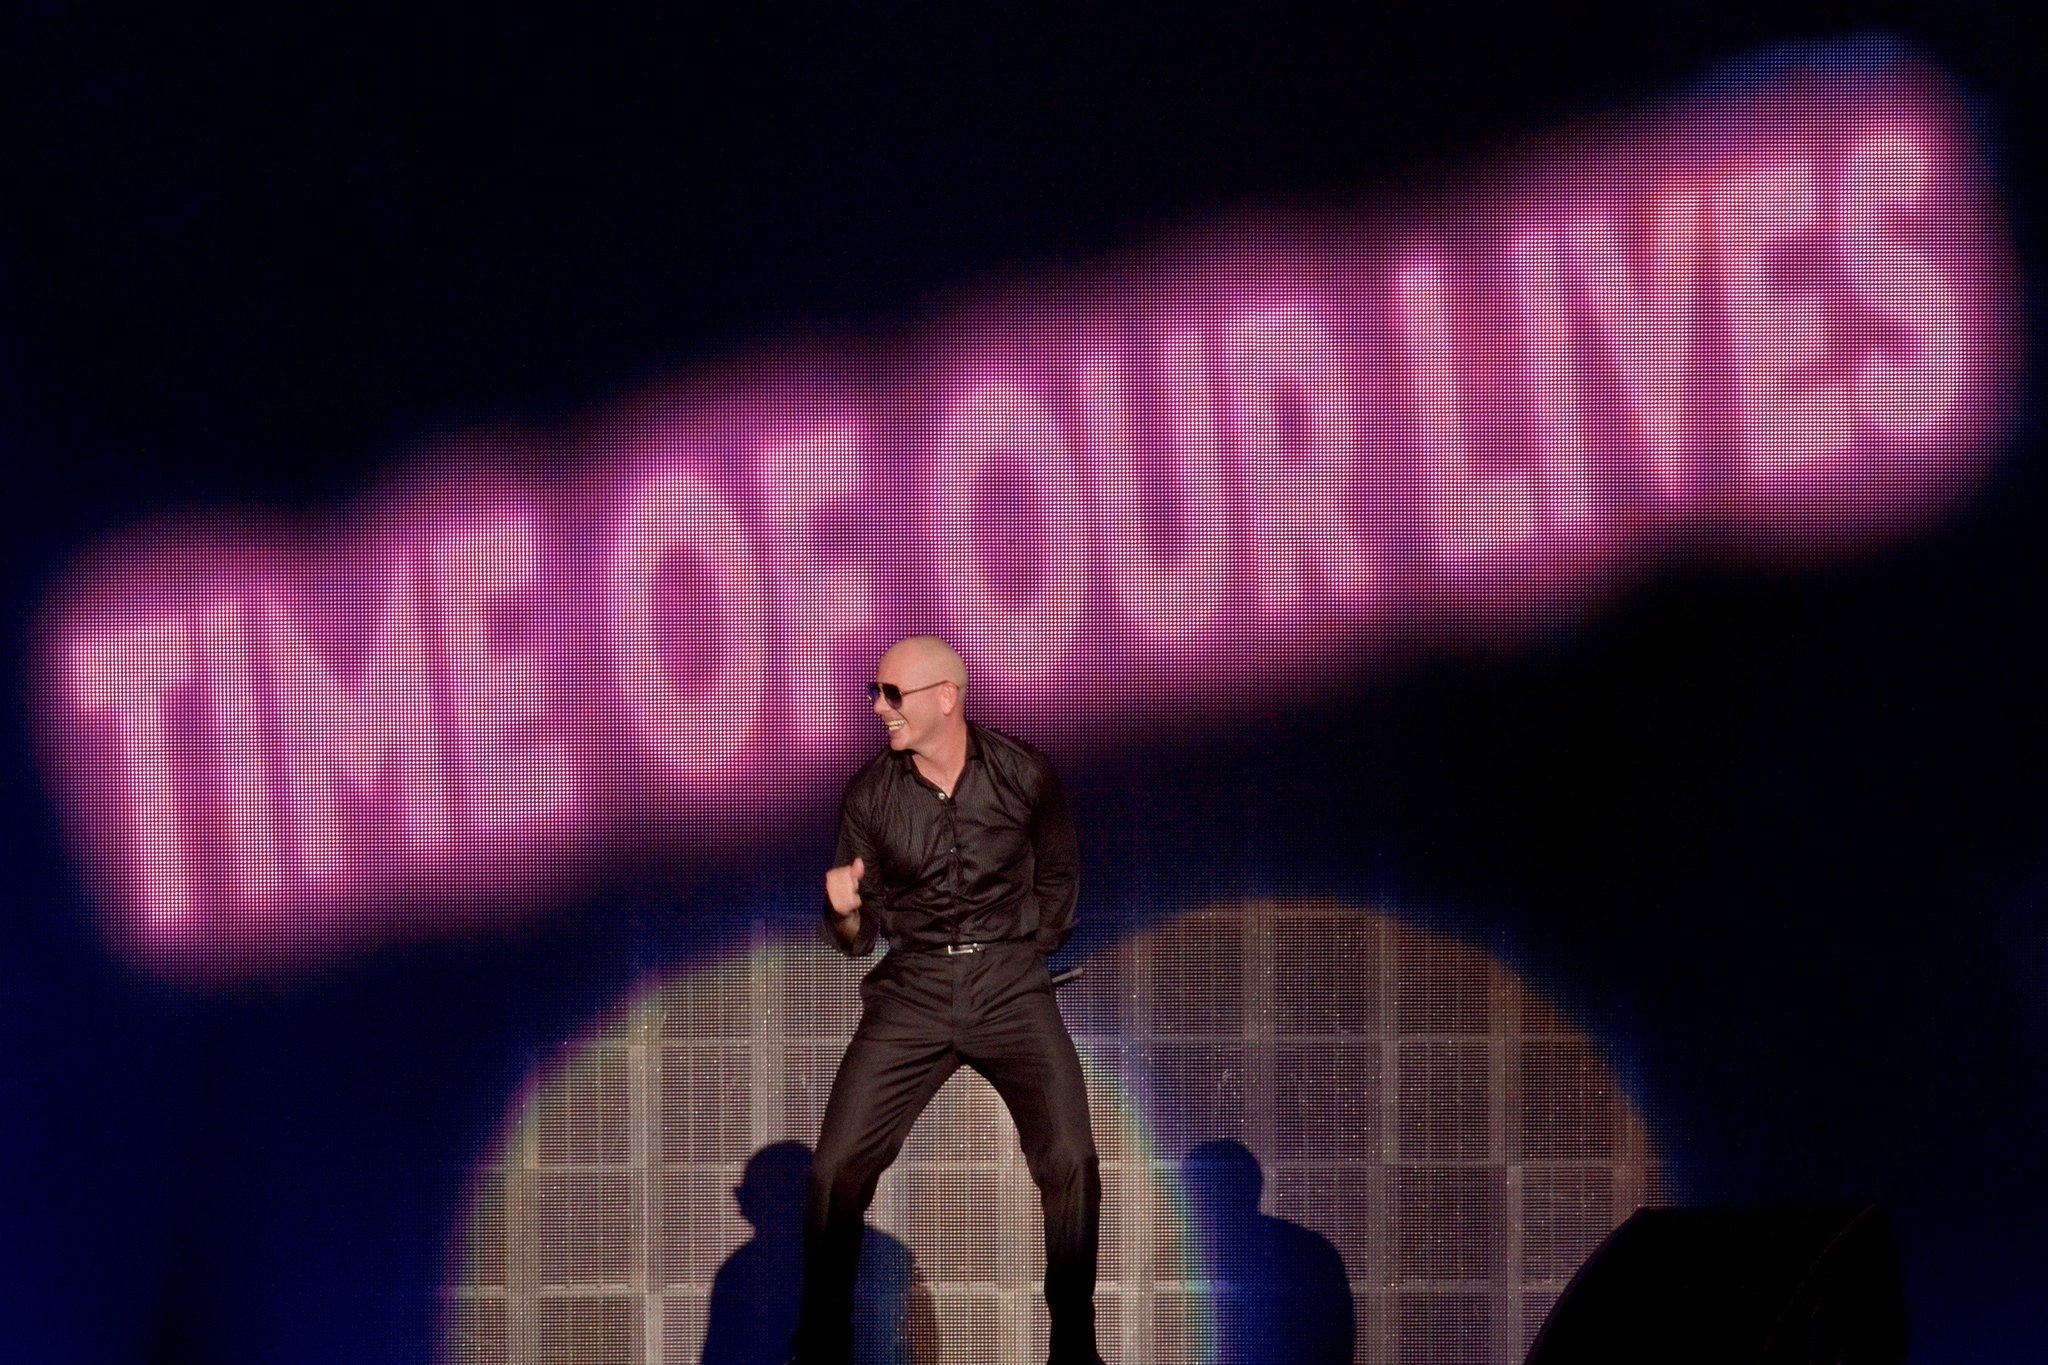 #TBT 'Every day above ground is a great day, remember that. Dale!' #PitbullVegas https://t.co/ZzDyqB9ia3 https://t.co/8bYx43yFCi